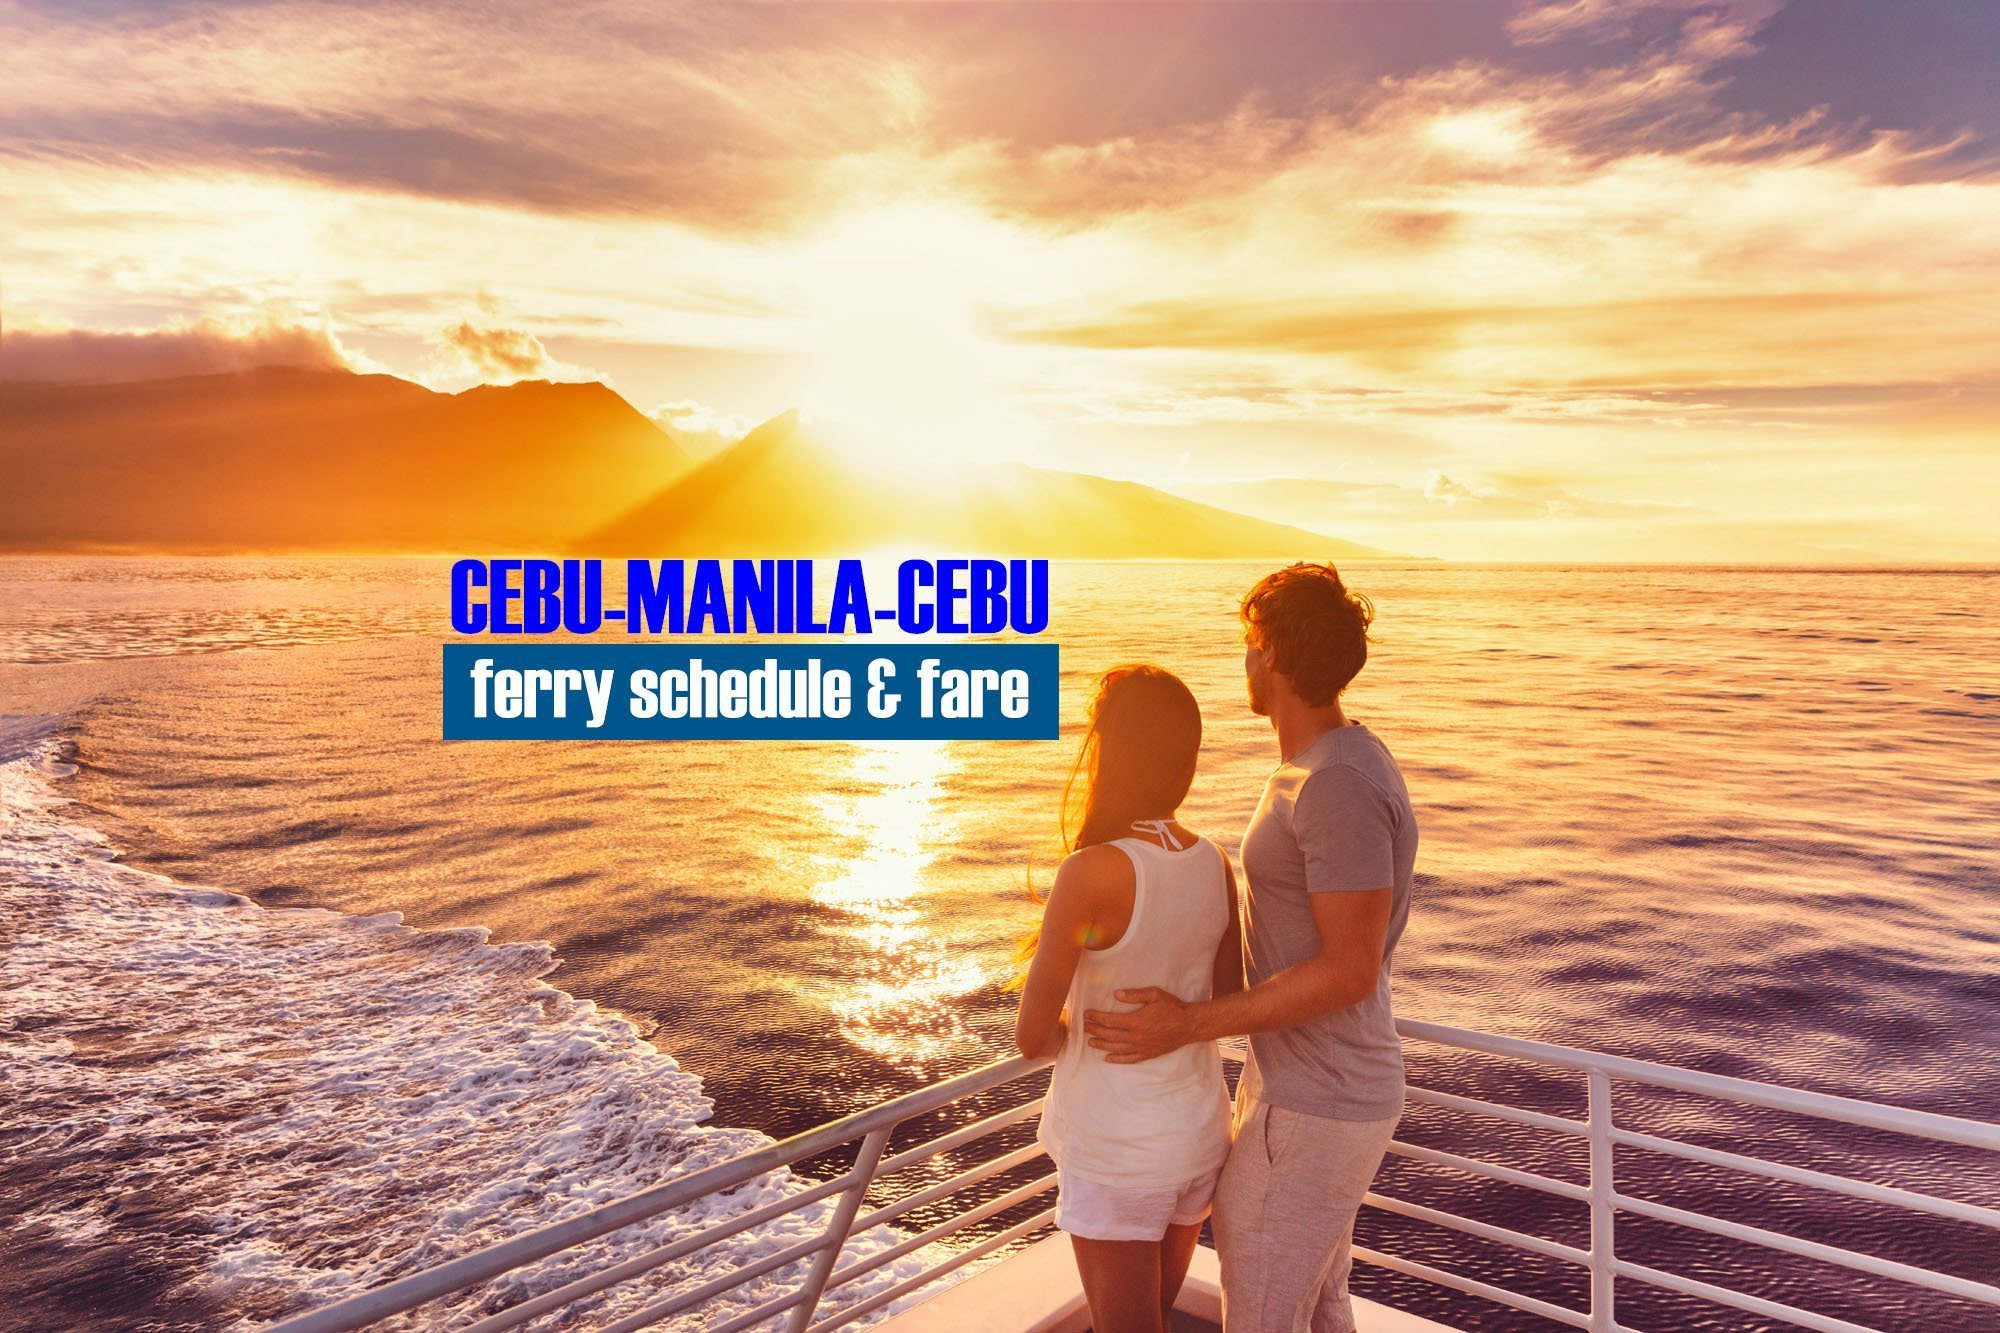 Cebu to Manila: 2019 Boat Schedule and Fare